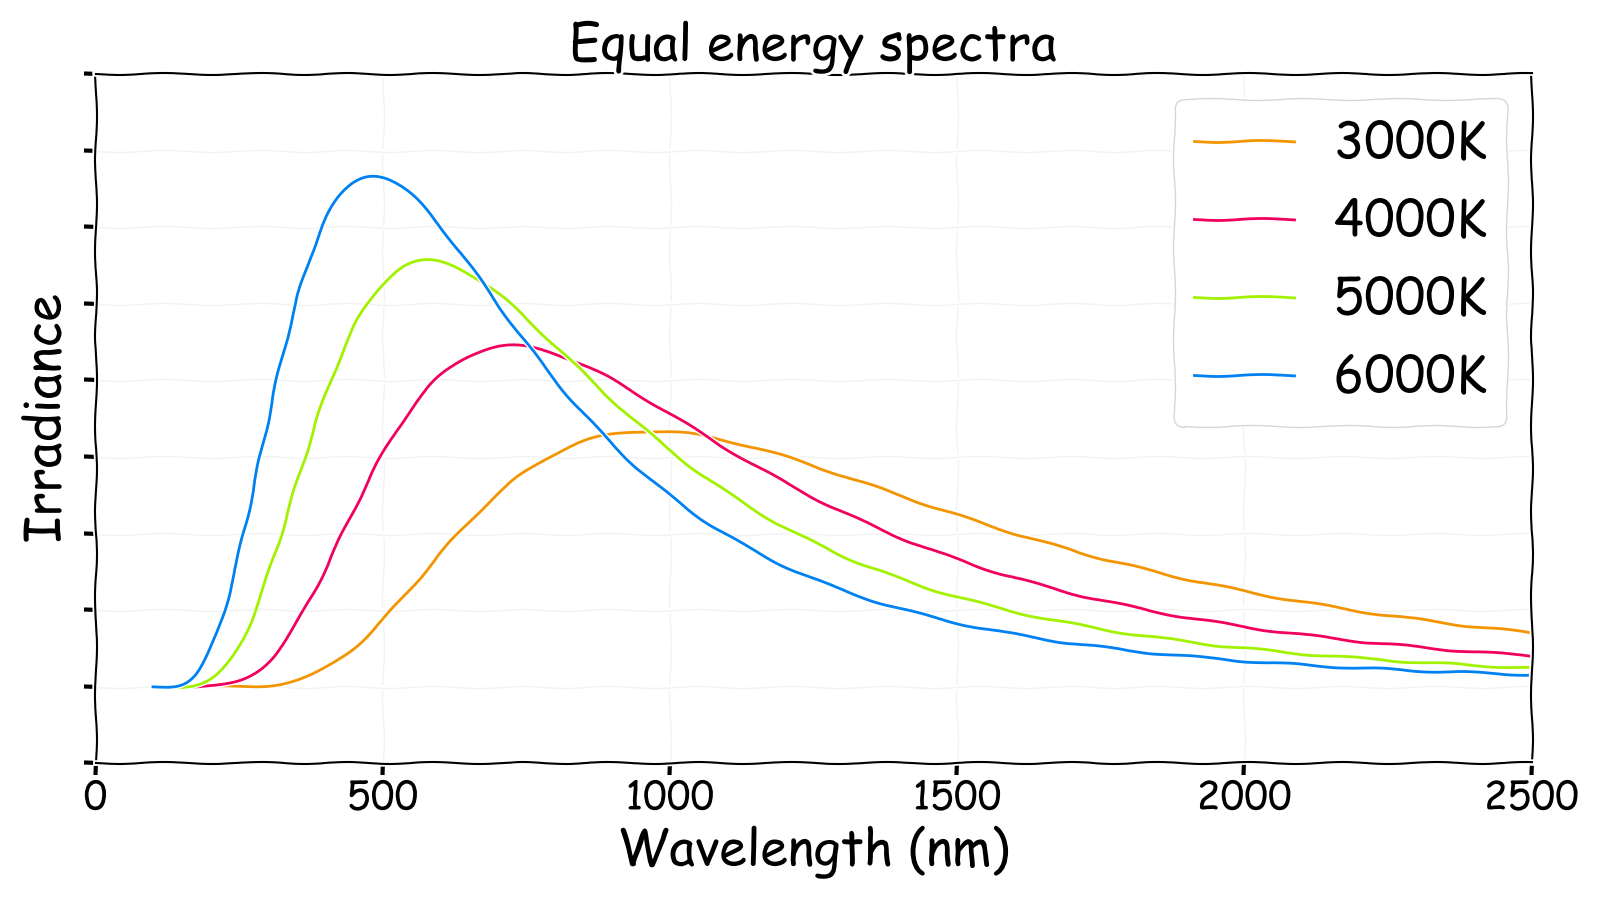 Equal energy irradiance spectra for different temperature stars